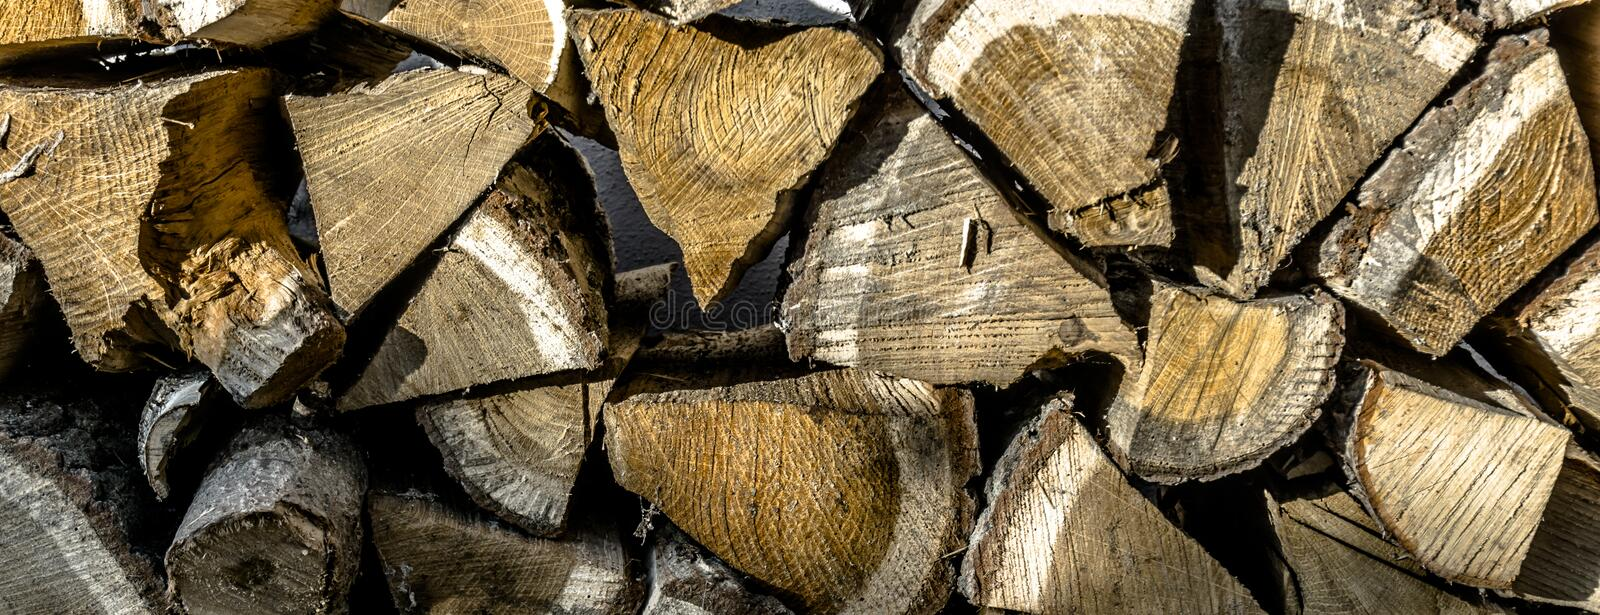 Close-up view of a stack of chopped wood for the fire in the fir. Close-up view of a stack of chopped wood for the fireplace fire in winter, background or royalty free stock image